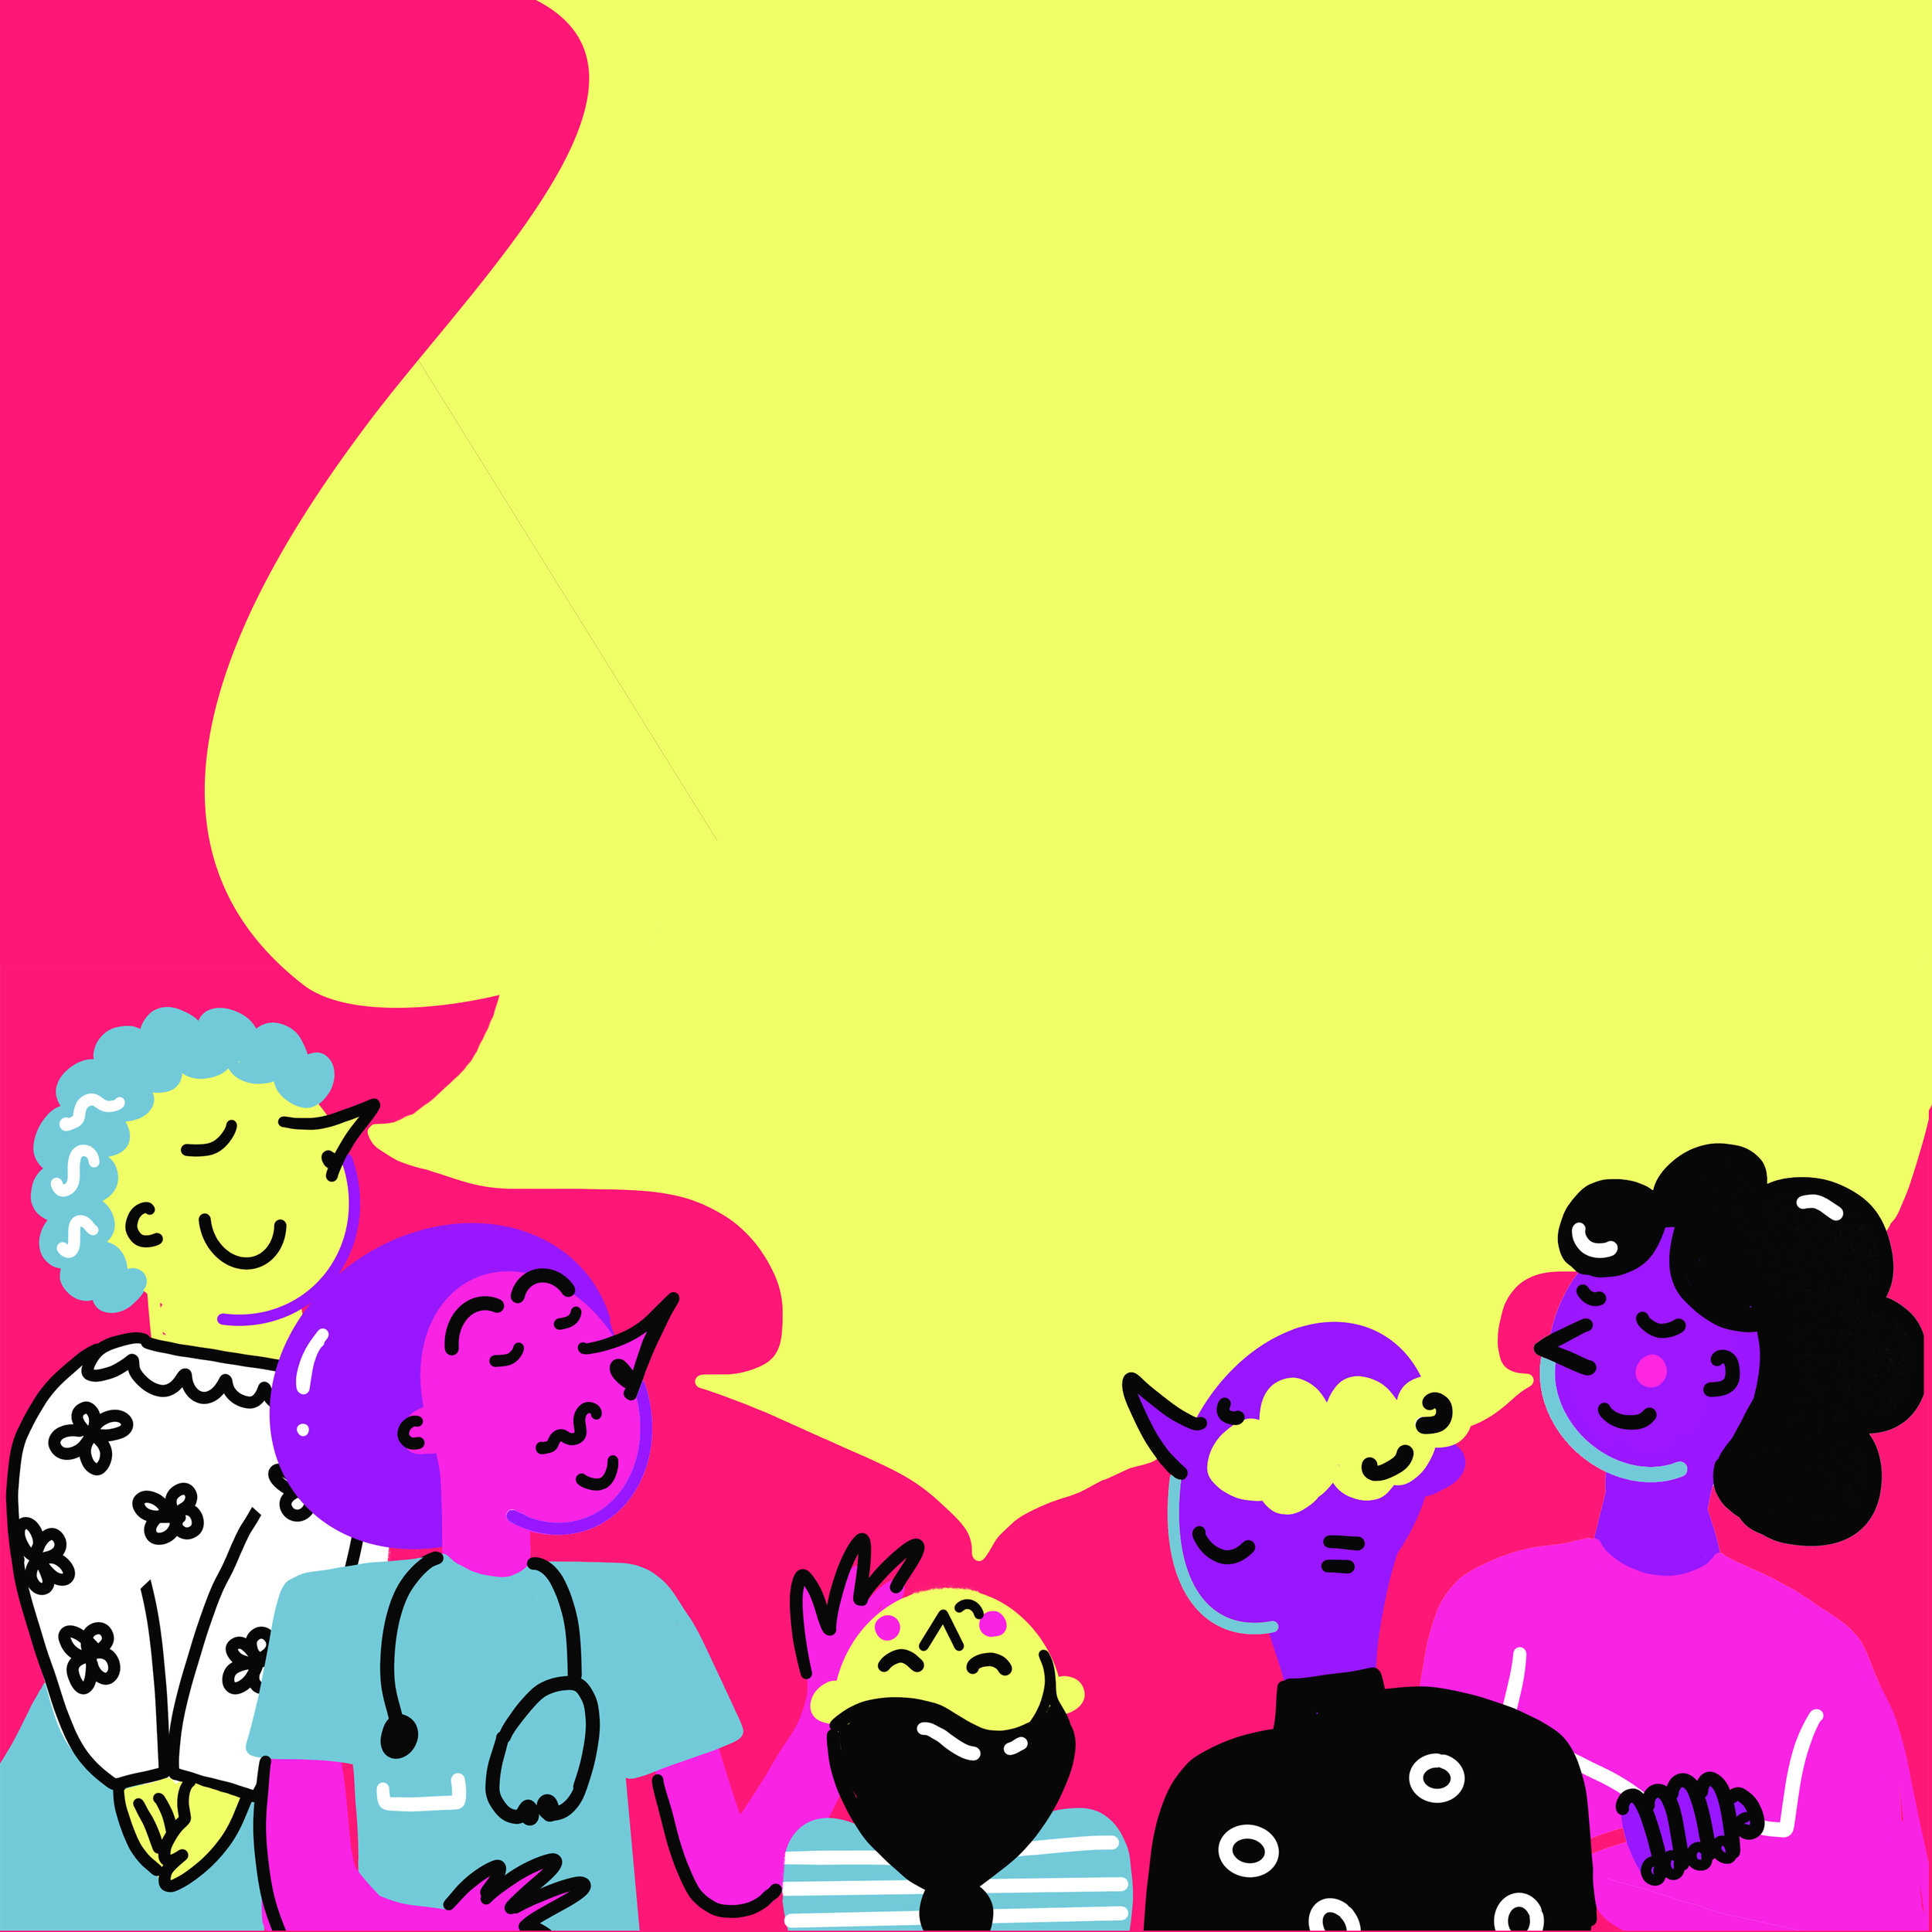 Illustration of five characters sniffing a yellow mist. Characters include an old lady and a doctor.